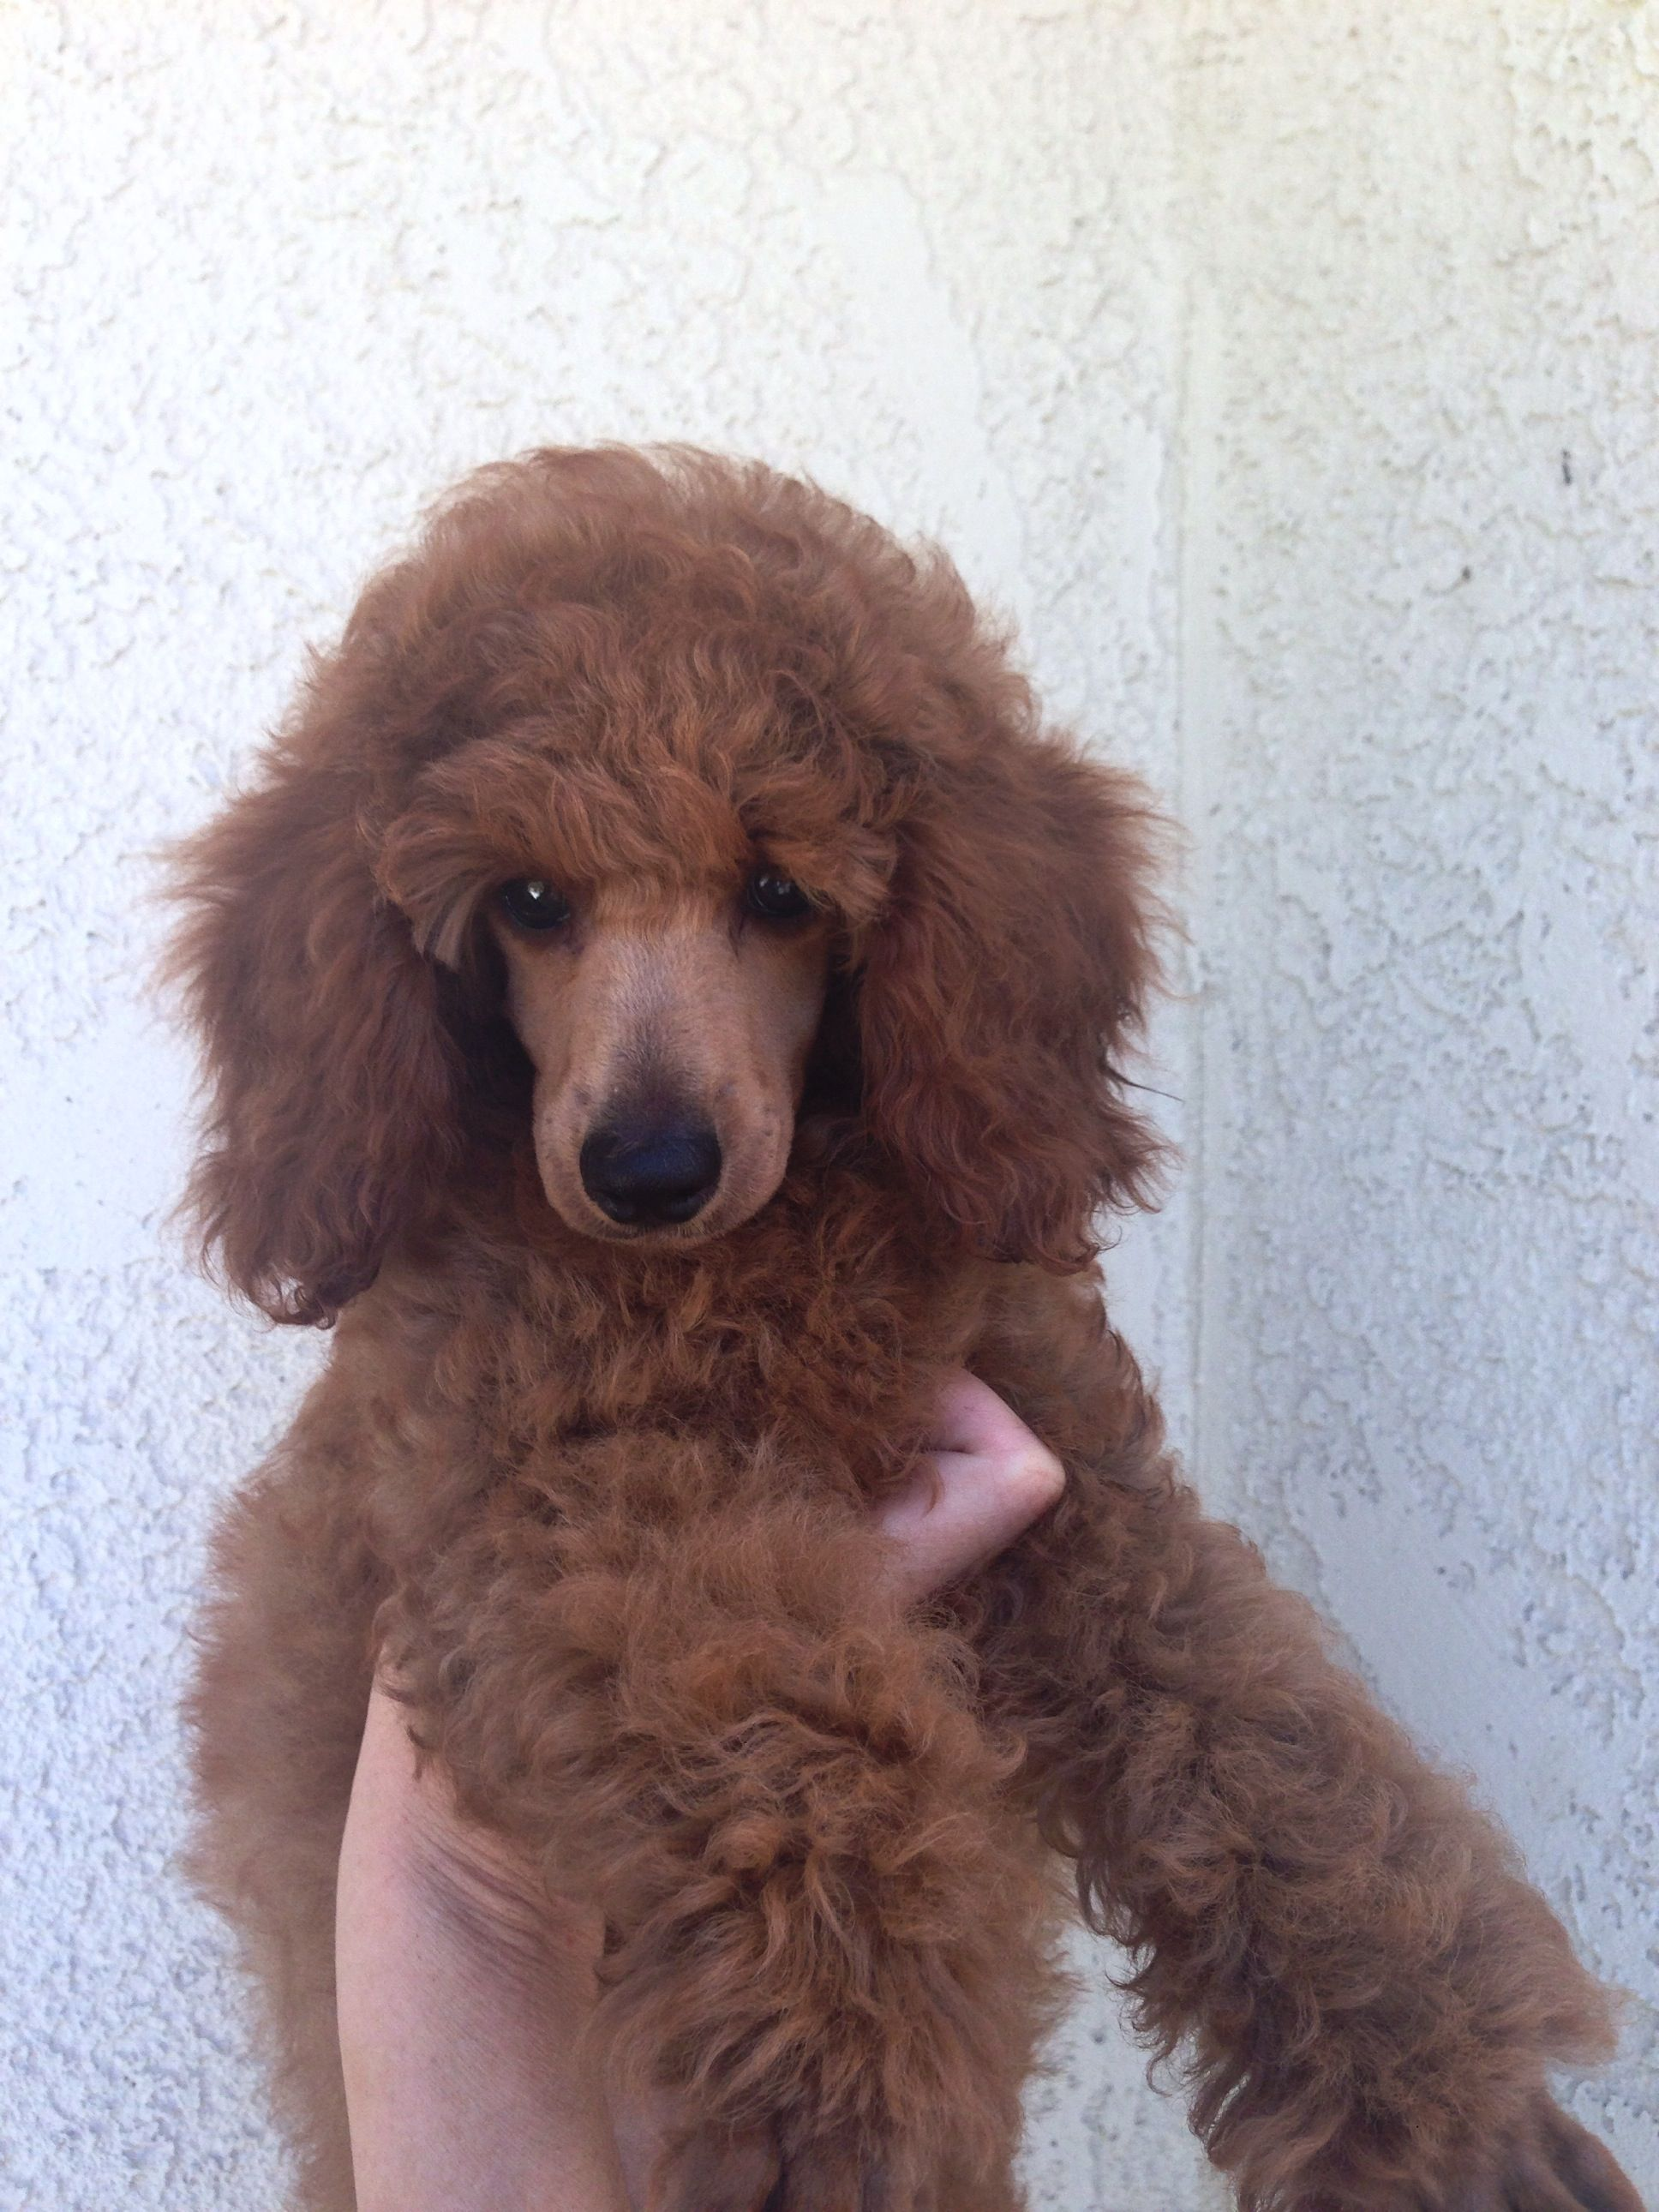 Pretty Long Ears At 11 Weeks West Coast Poodles Minipoodle Com